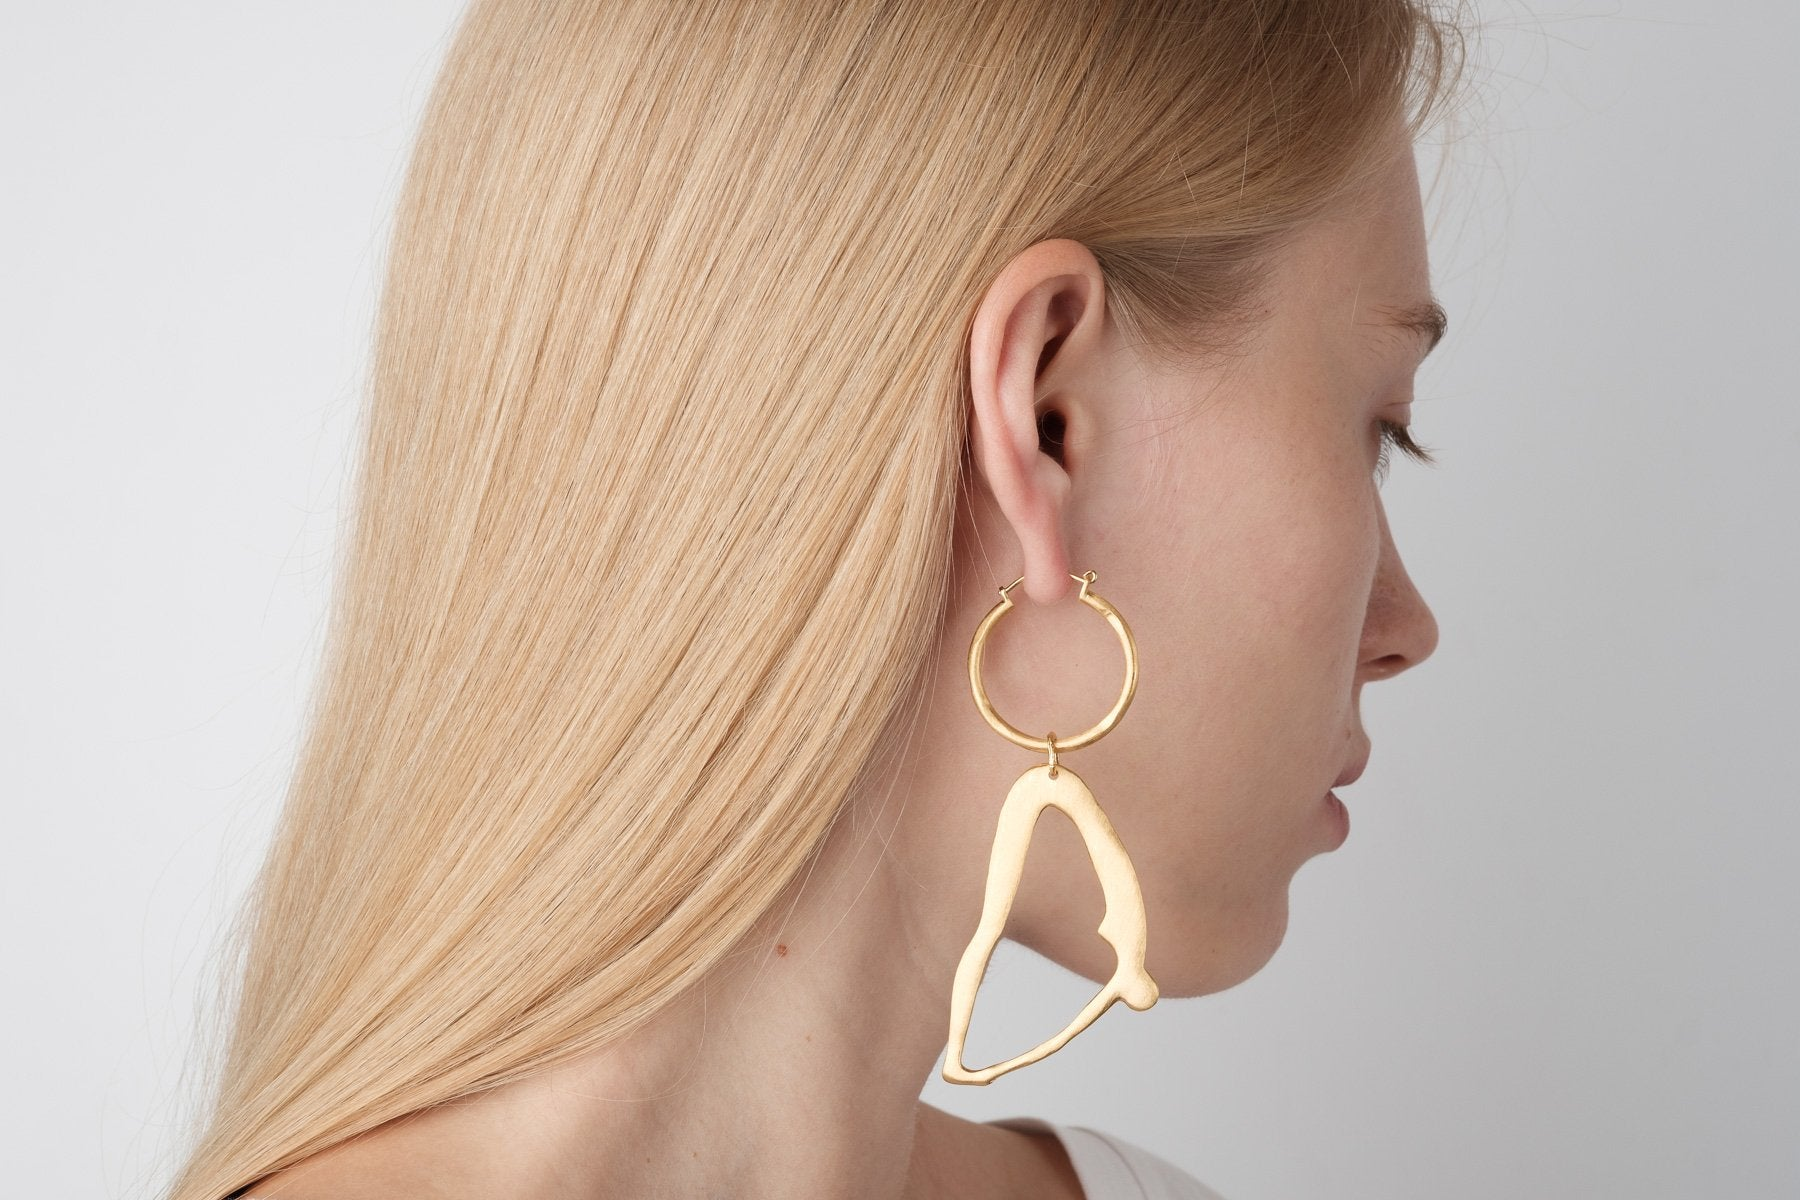 D / Large Hoops